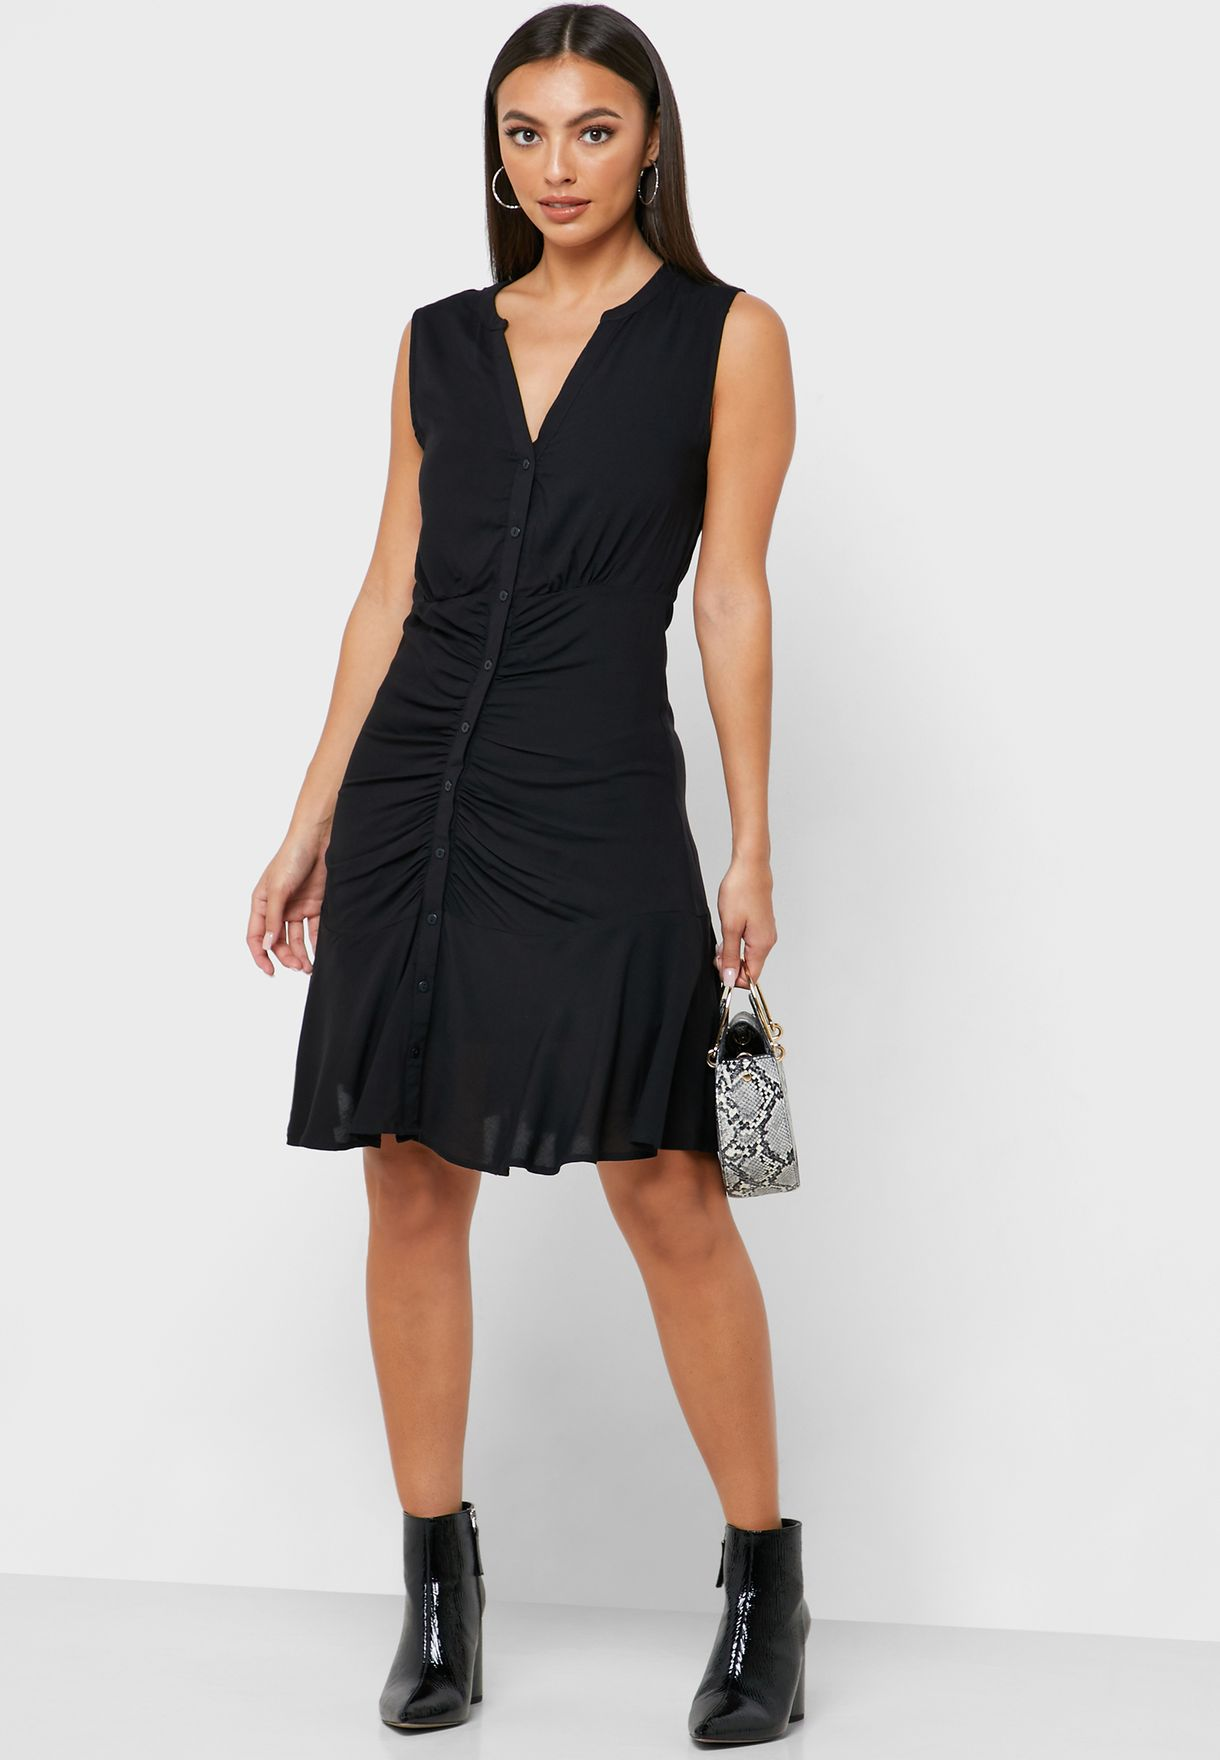 Ruched Detail Button Down Dress